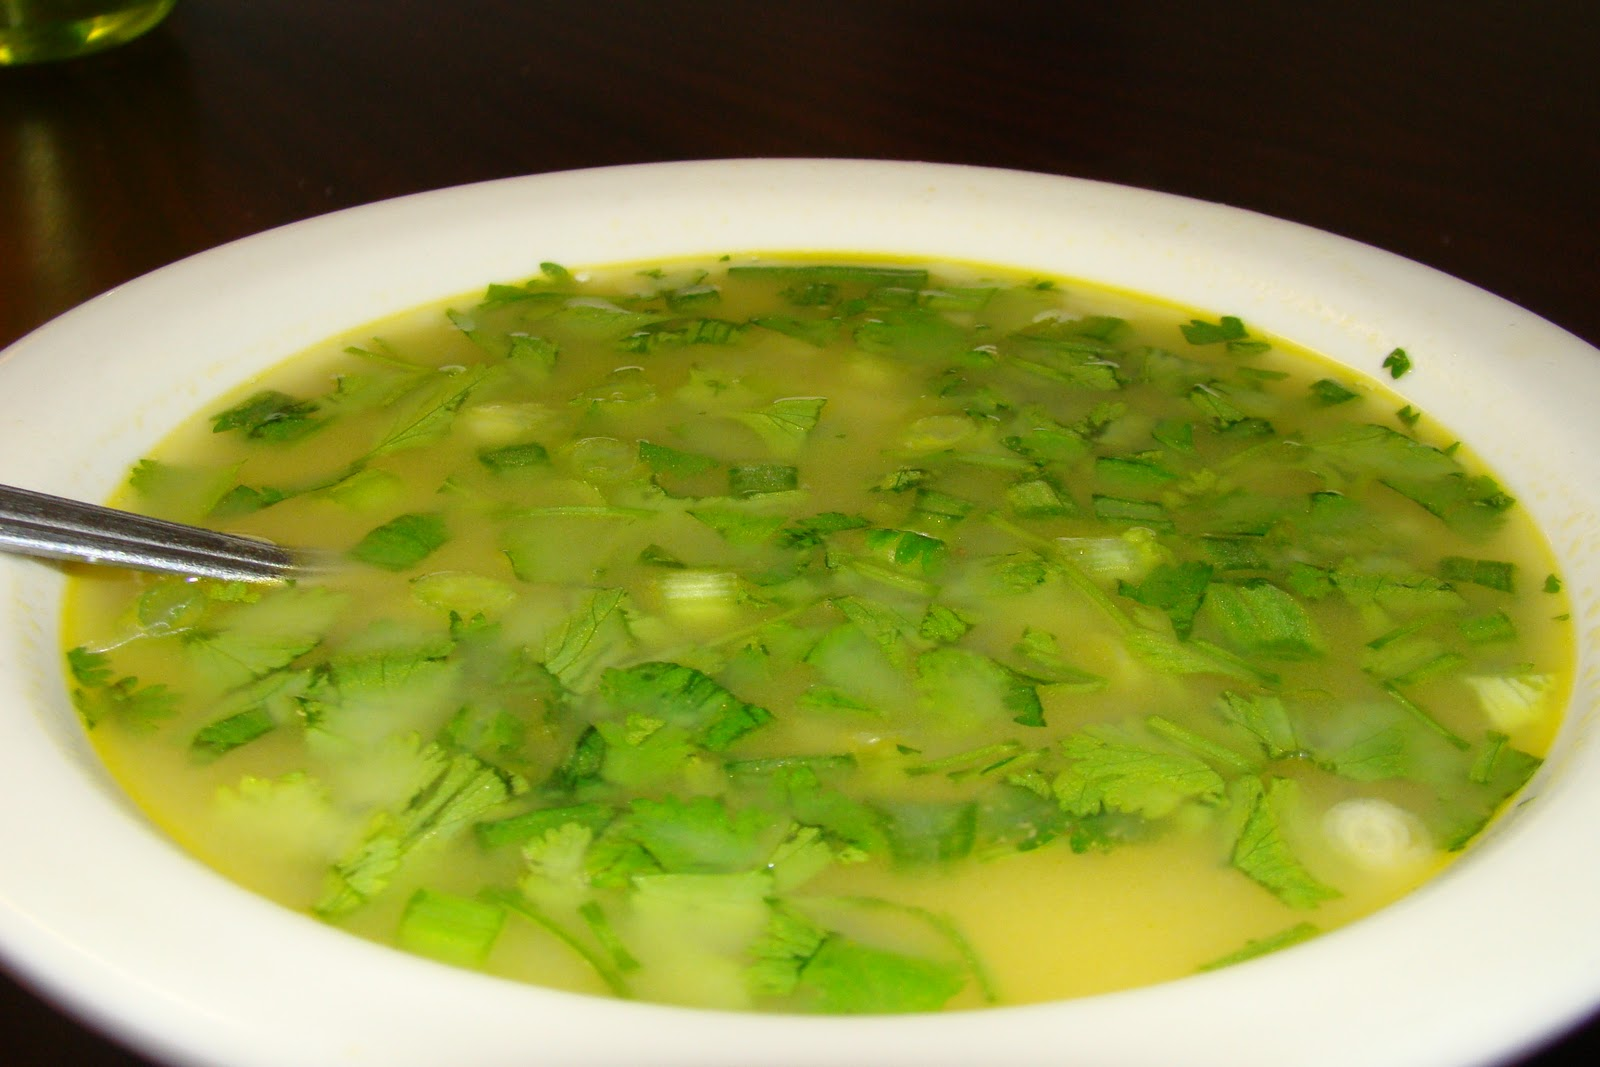 nicks n jits kitchen: Lemon and coriander soup